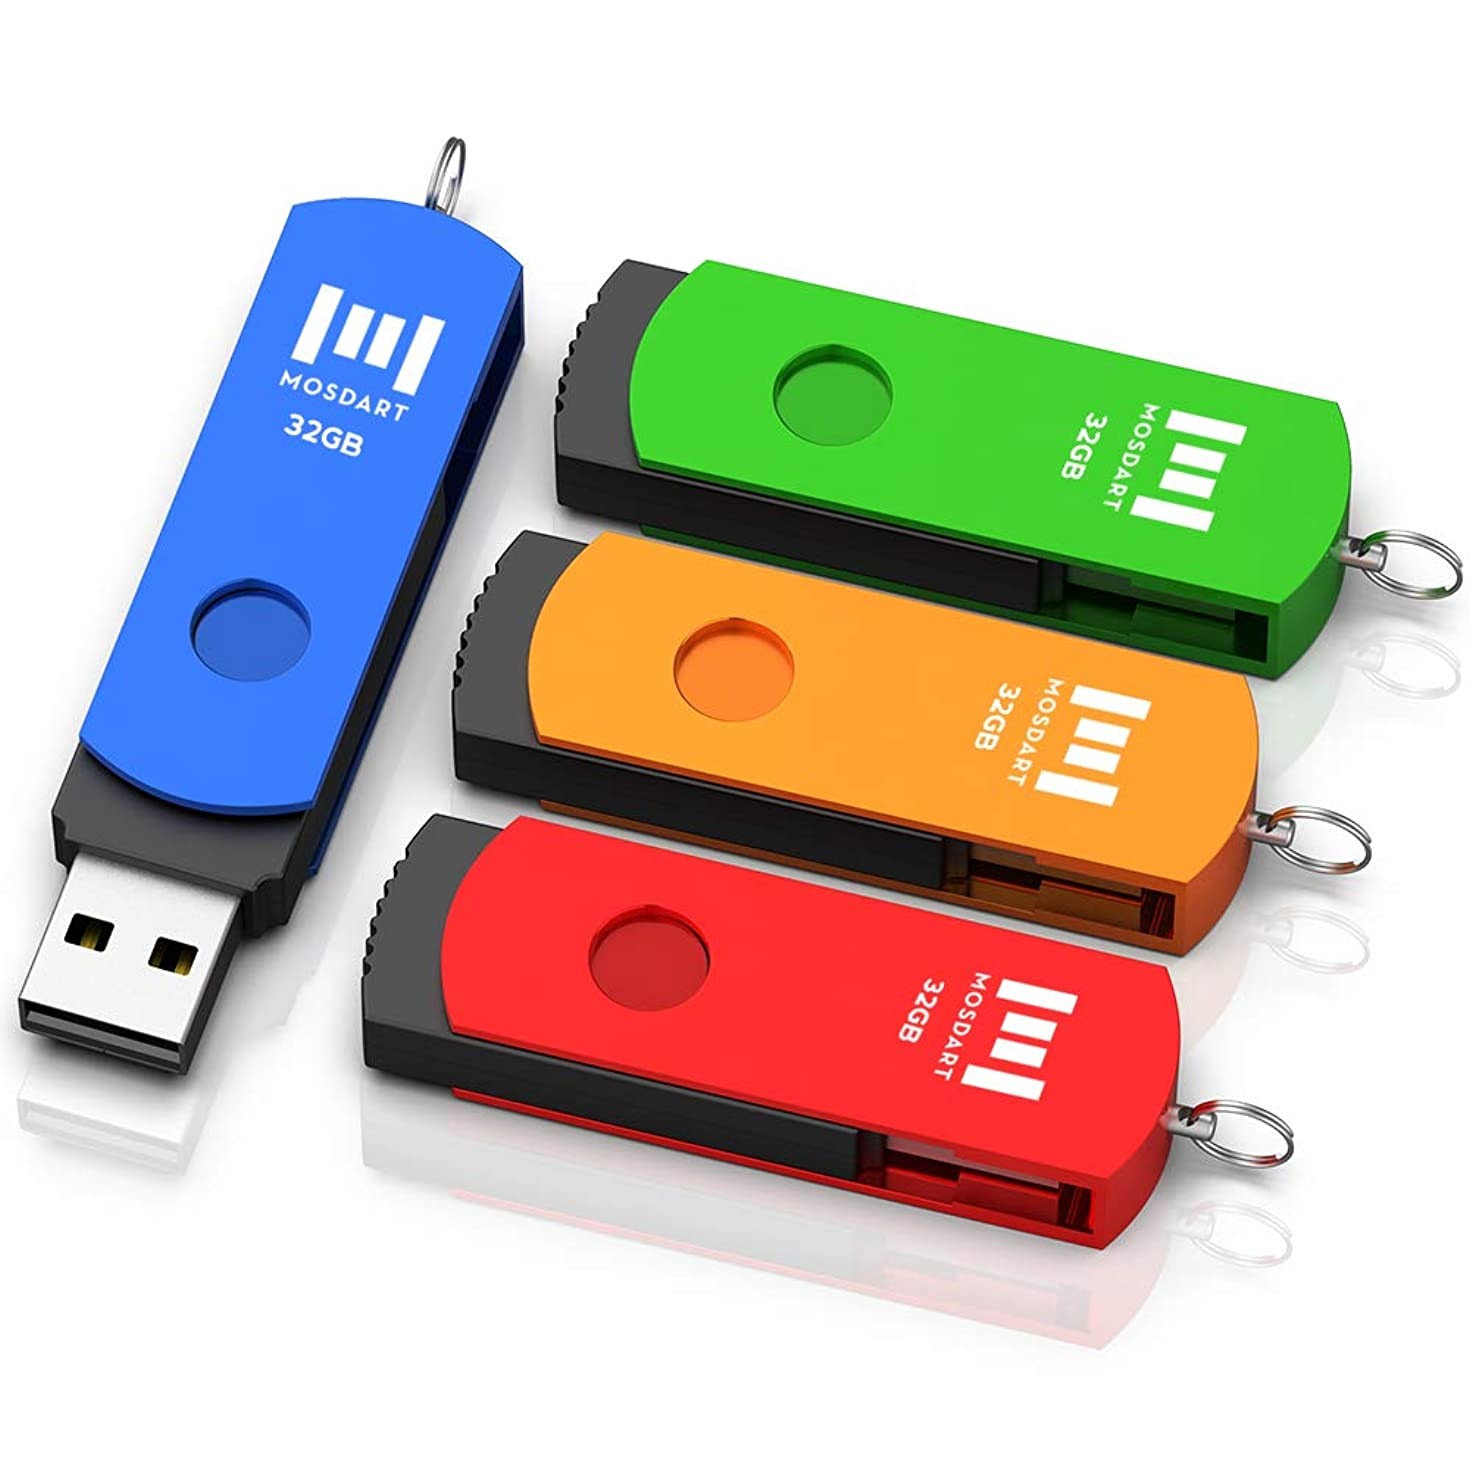 32GB USB 2.0 Flash Drive 4 Pack, A Set of 32 GB 360° Rotation Thumb Drives with Keychain, 32gig Multipack Jump Drive for Computer Storage by MOSDART (Multicolor)